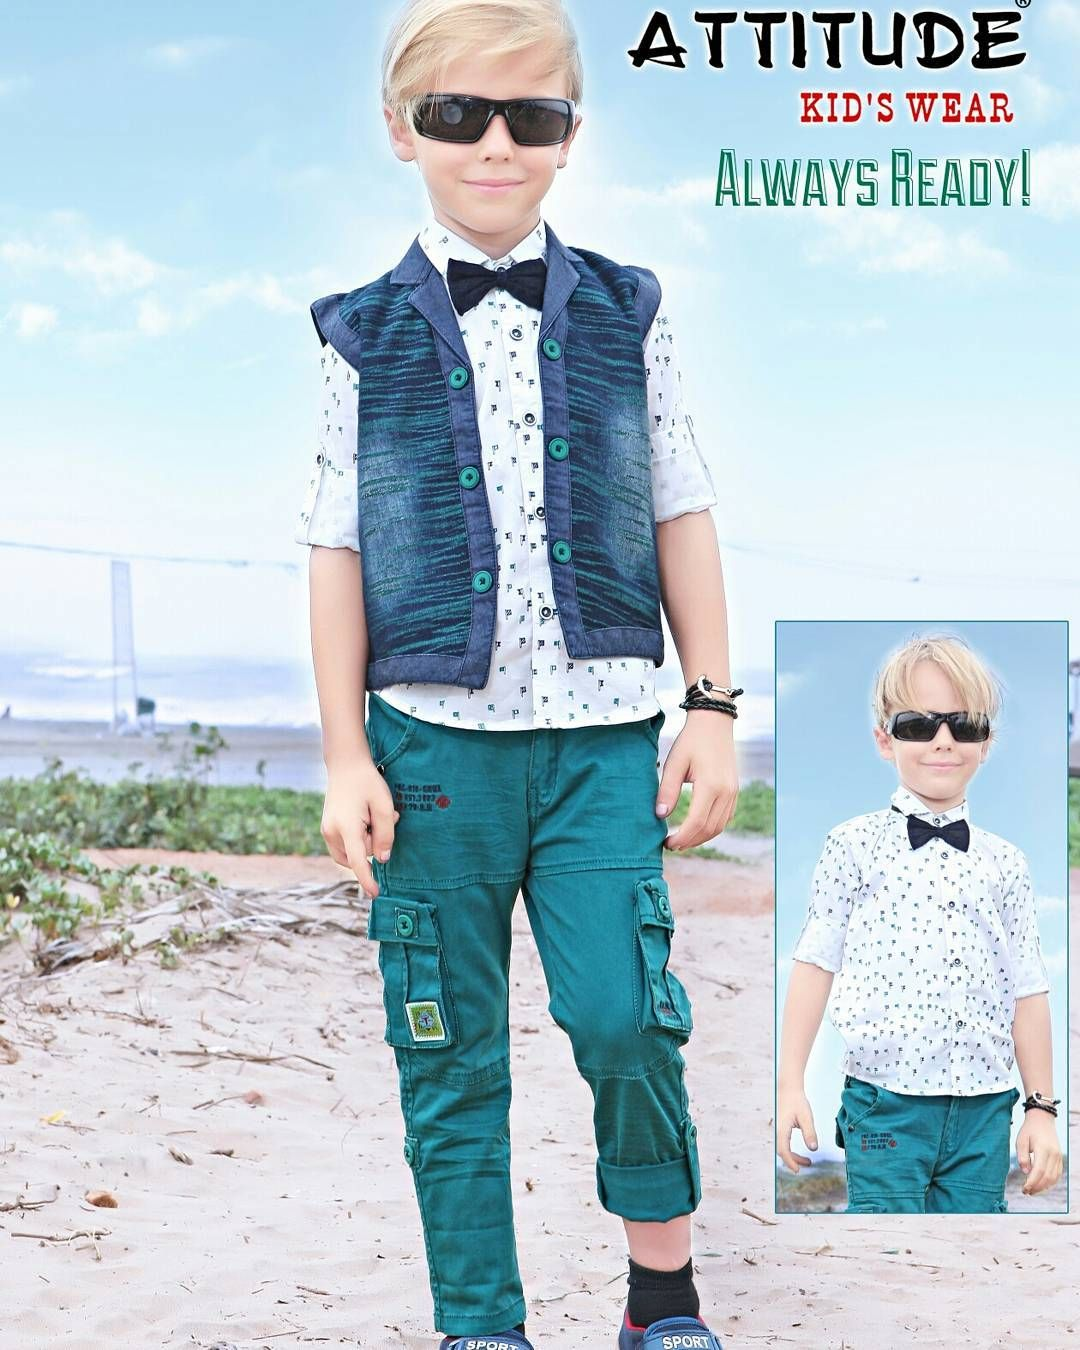 2f2ca3a98 #AttitudeKidsWear #Smart #Designer #Kids #Garments #Boys #Clothing #Style  #India #MakeInIndia #Trendy